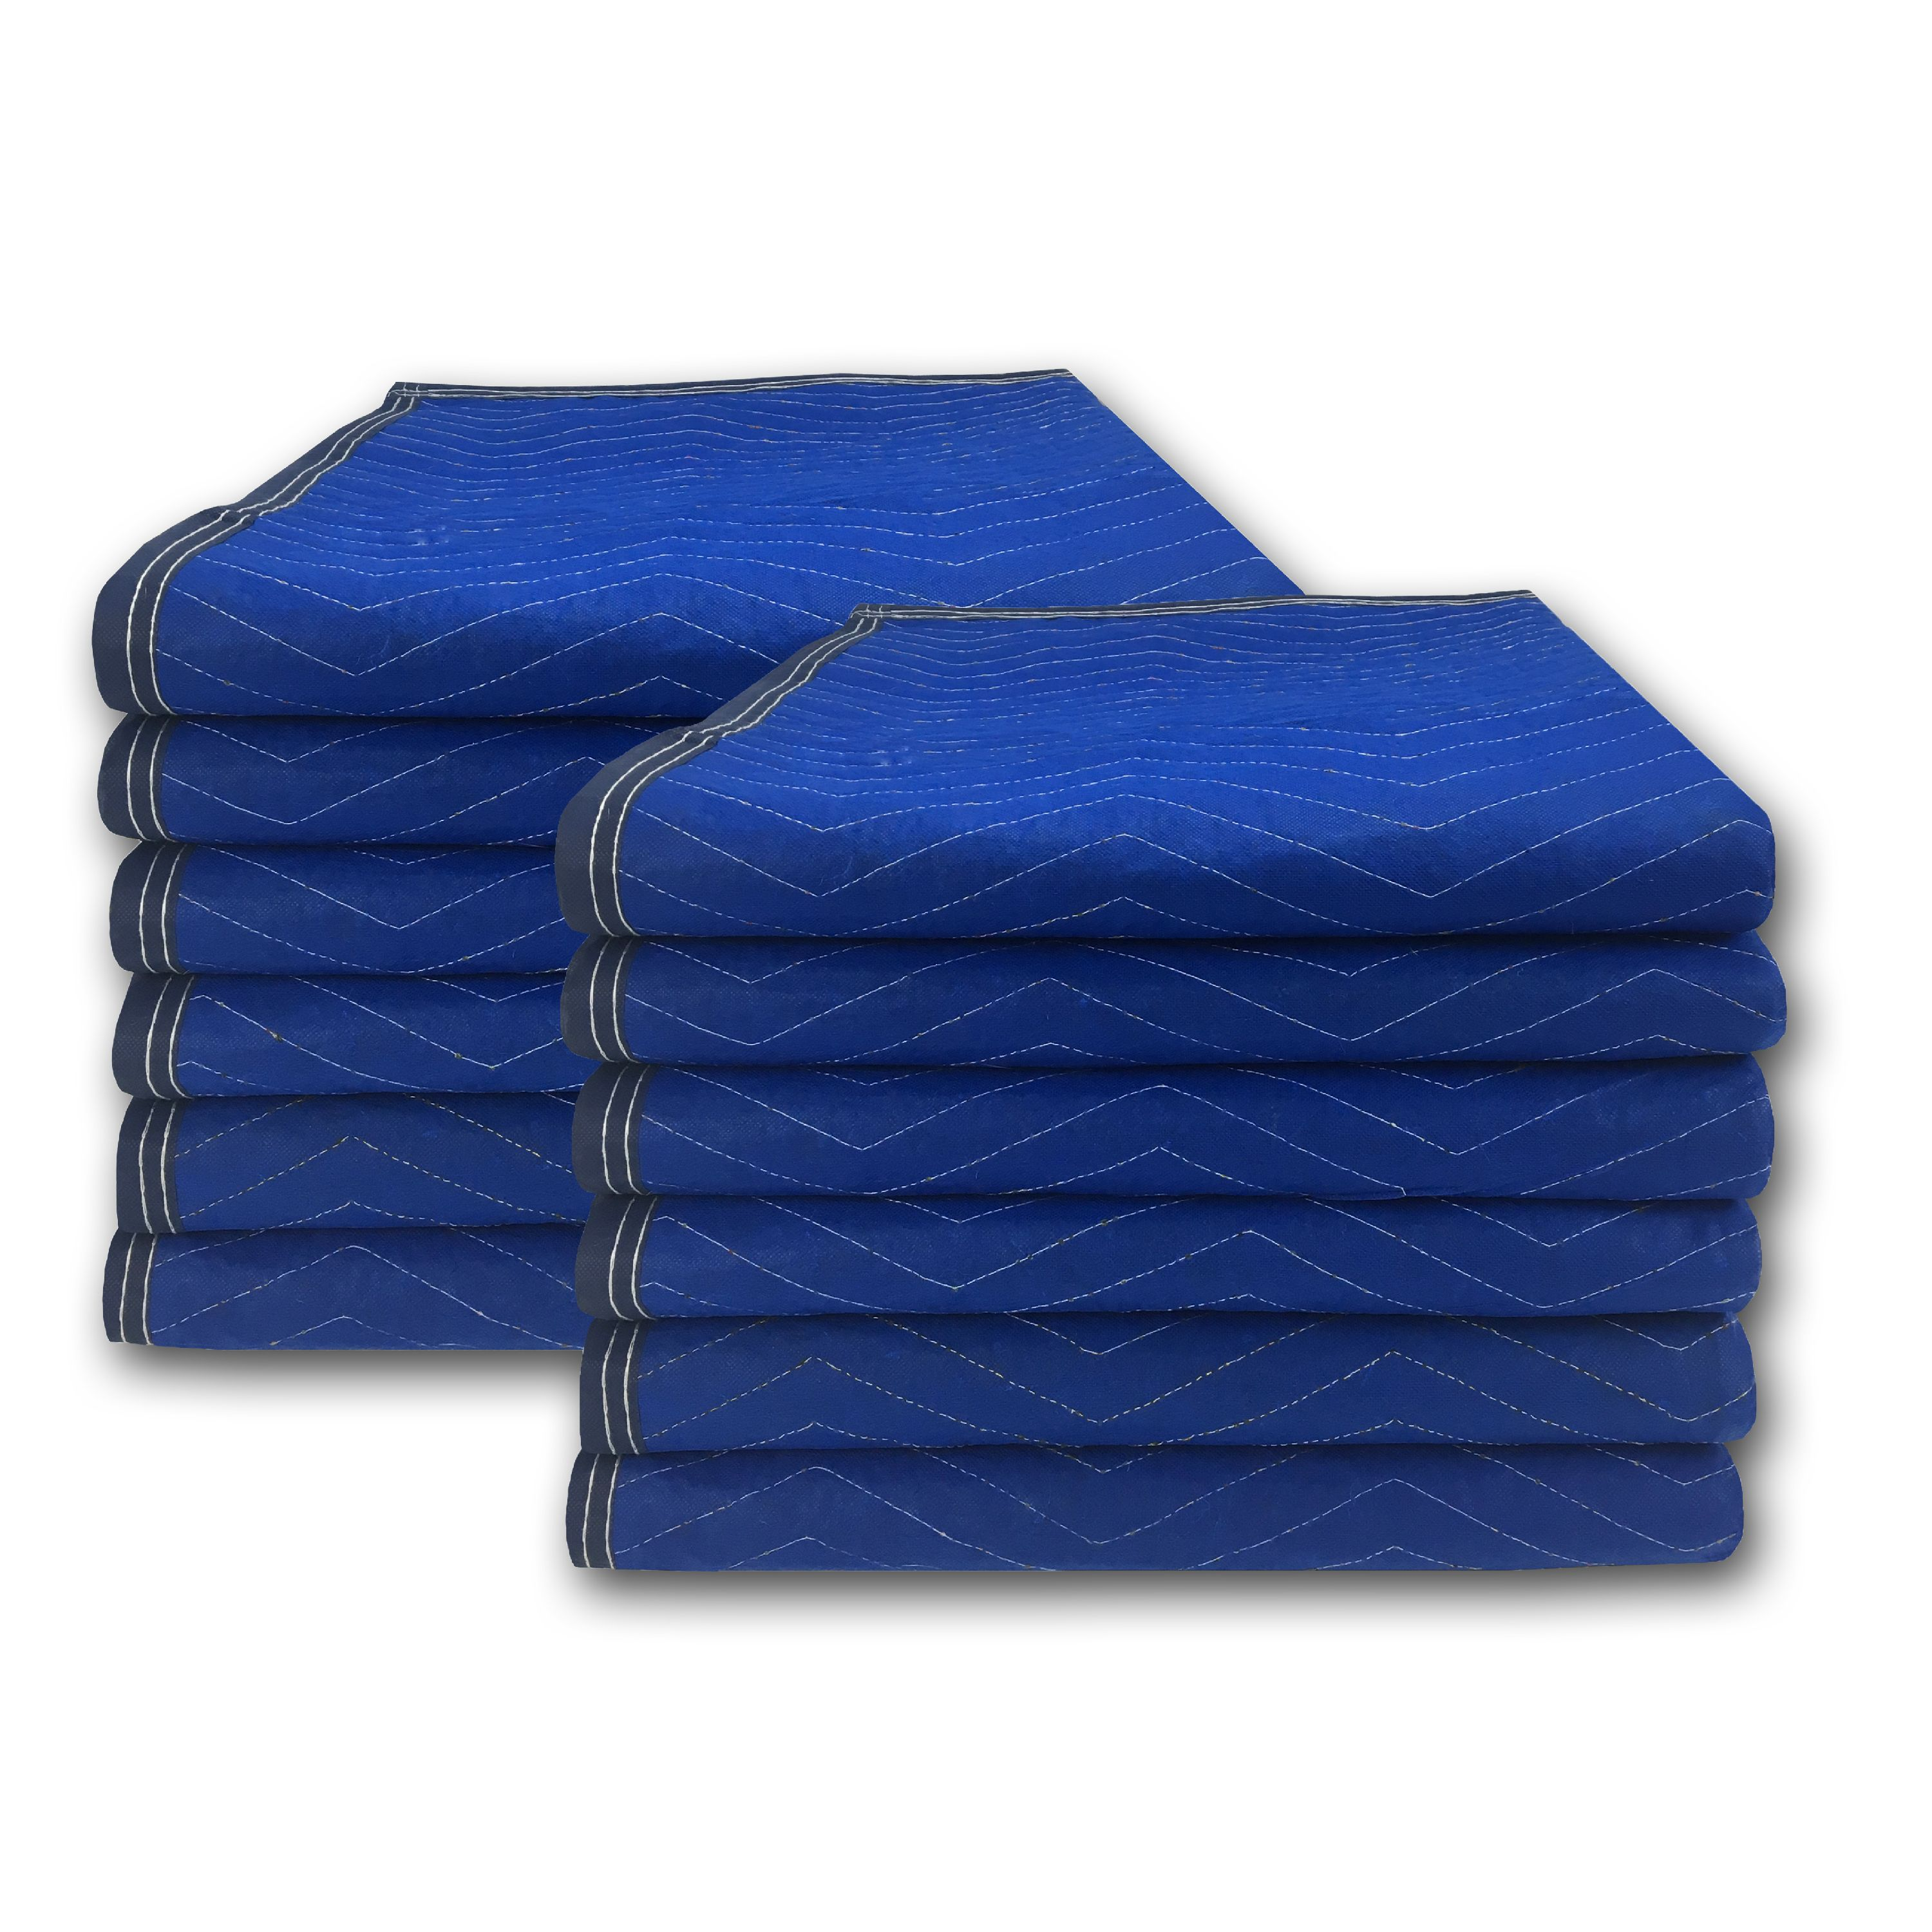 Uboxes Economy Moving Blankets, 72 x 80 in, 3.58lbs each, 12 Pack